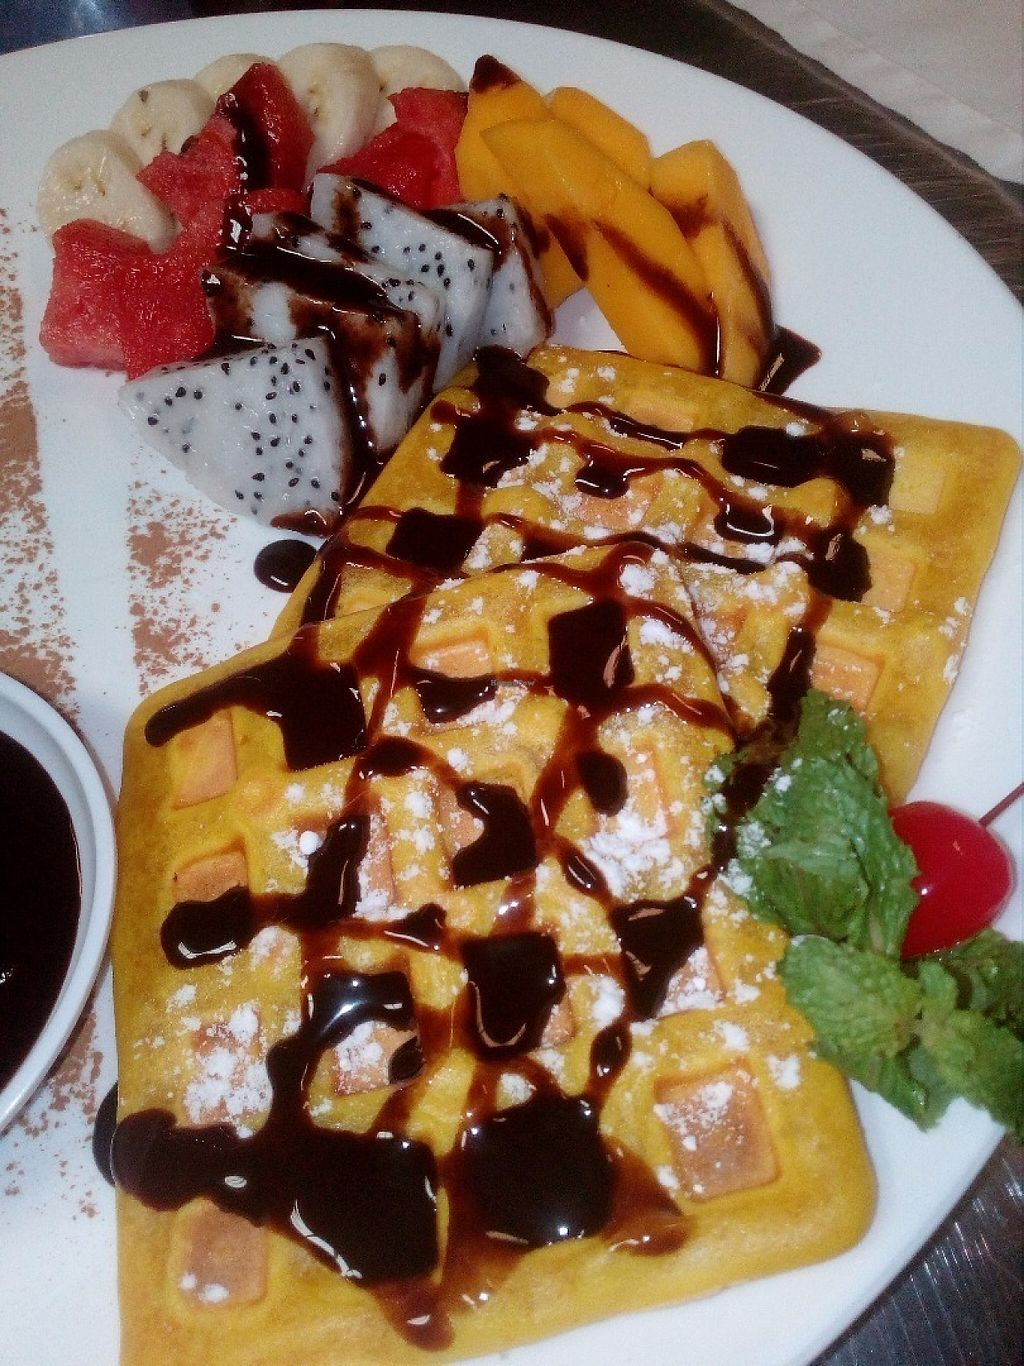 "Photo of CLOSED: Bamboo Bar & Vegetarian Restaurant  by <a href=""/members/profile/AnnaAnna"">AnnaAnna</a> <br/>Belgium waffles with fruits and chocolate <br/> May 31, 2017  - <a href='/contact/abuse/image/38858/264431'>Report</a>"